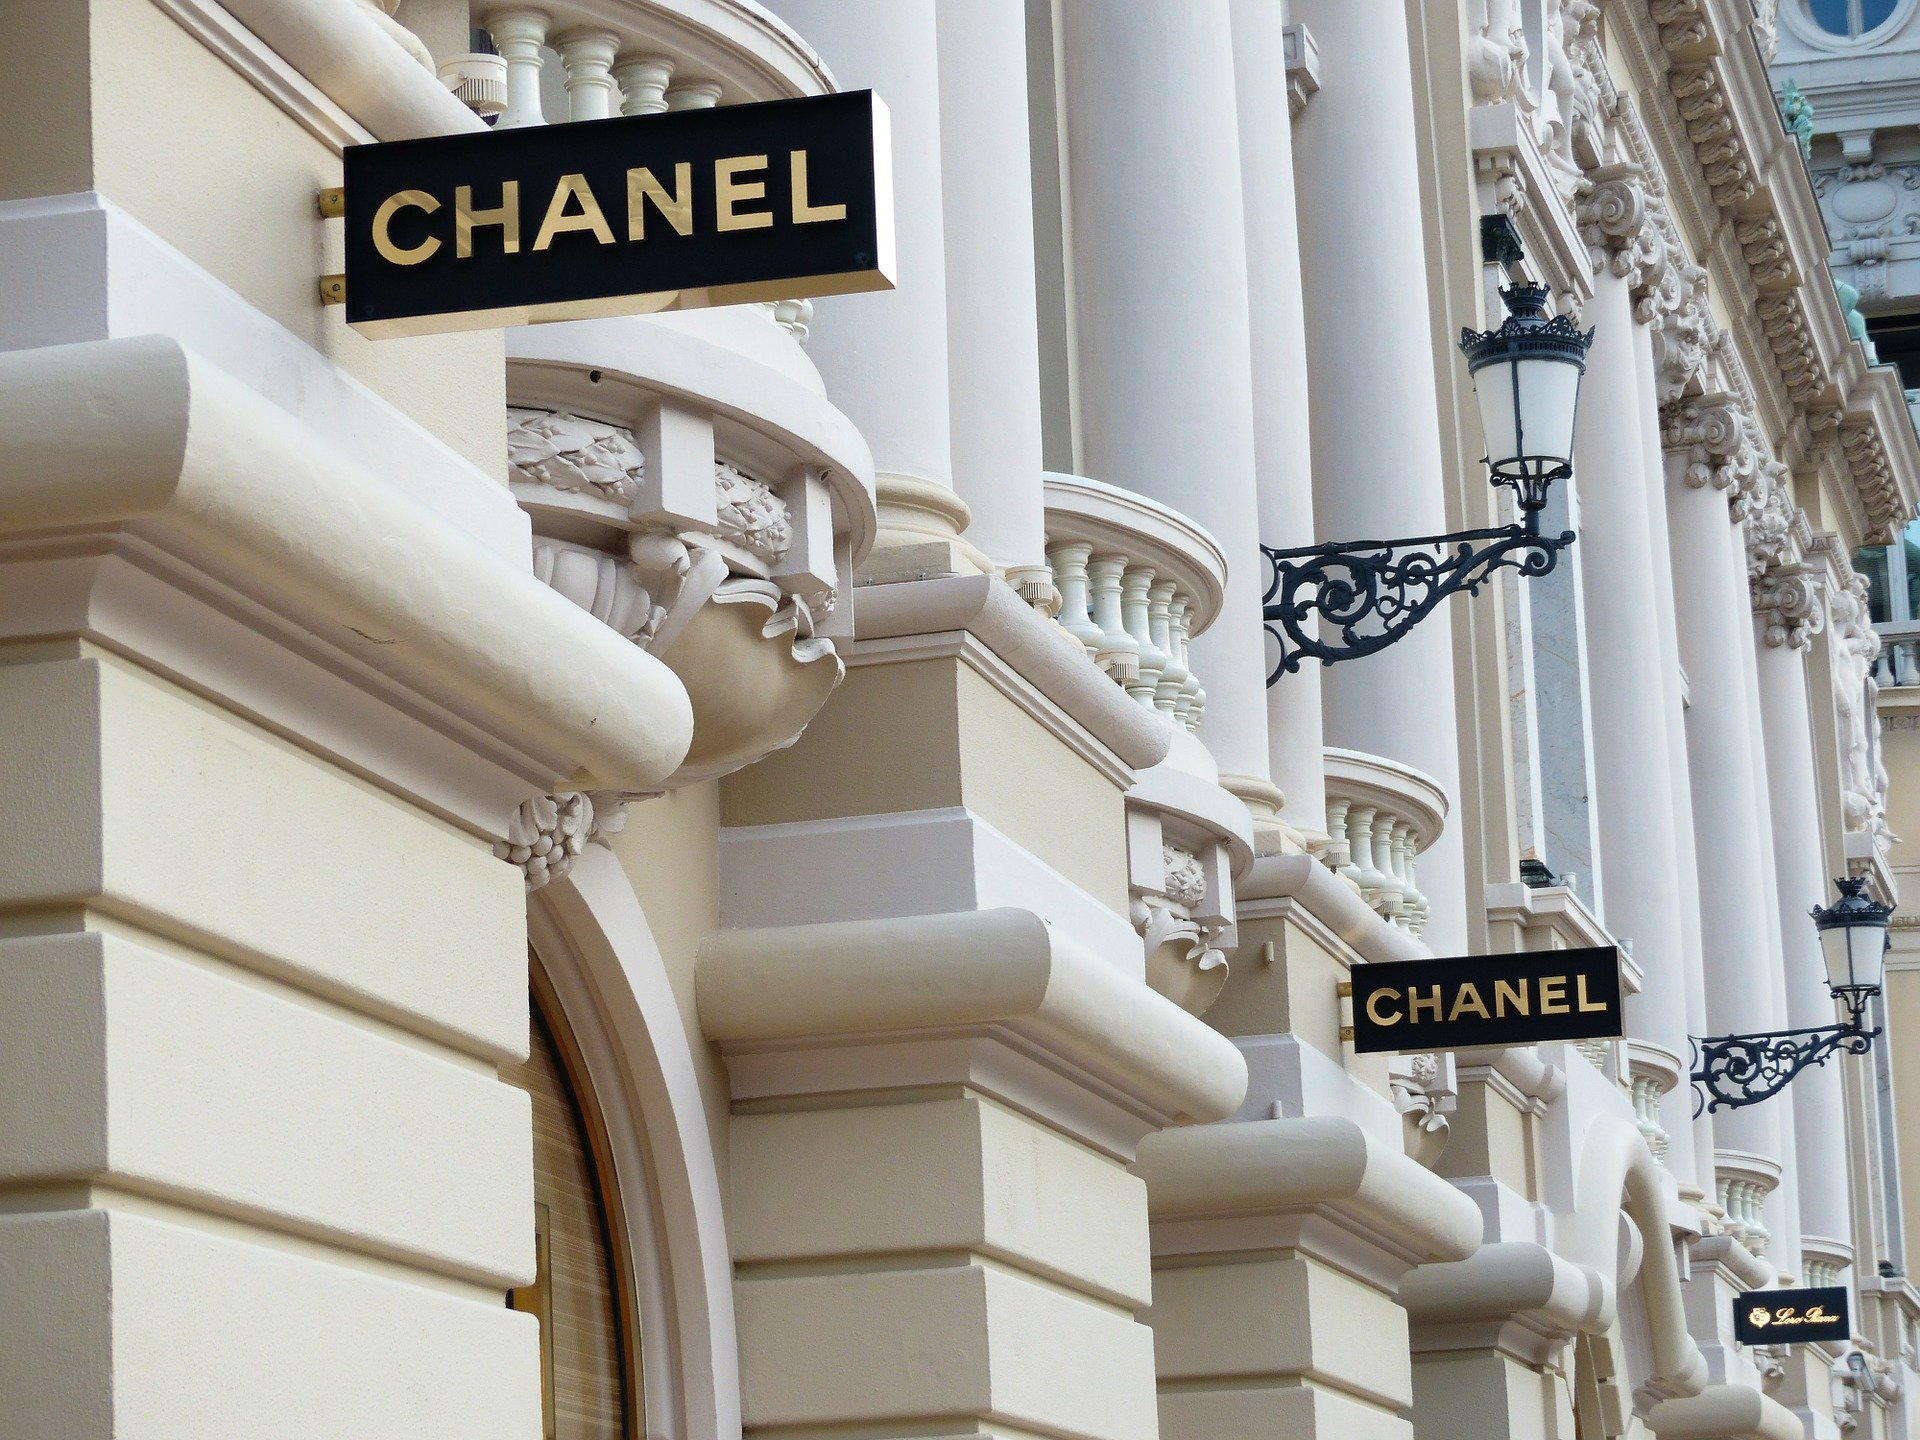 CHANEL AND DANCE